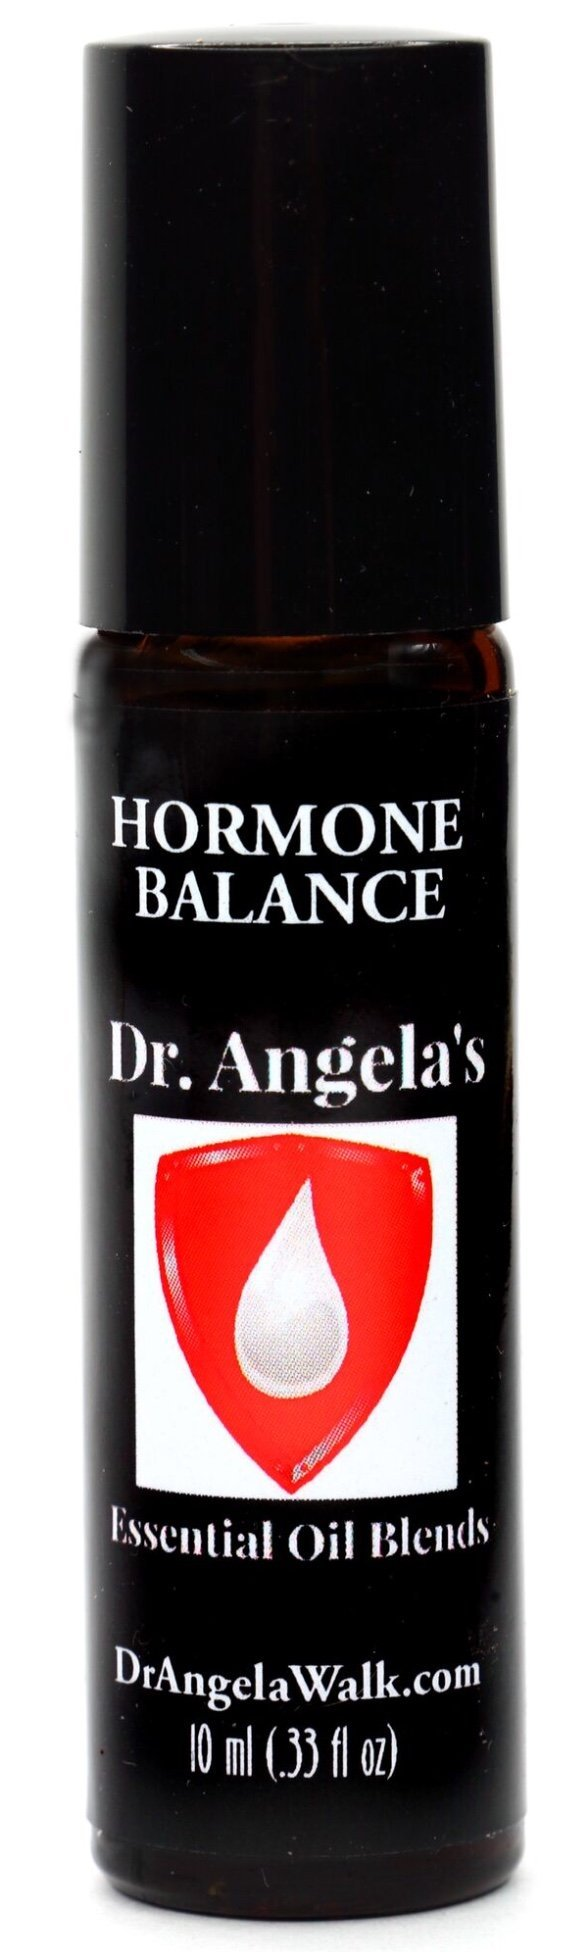 Dr. Angela's Hormone Balance Essential Oil Blend | Therapeutic Grade | Hot Flashes and Menopause Relief Roll-On Bottle 10 ml (.33 fl oz)